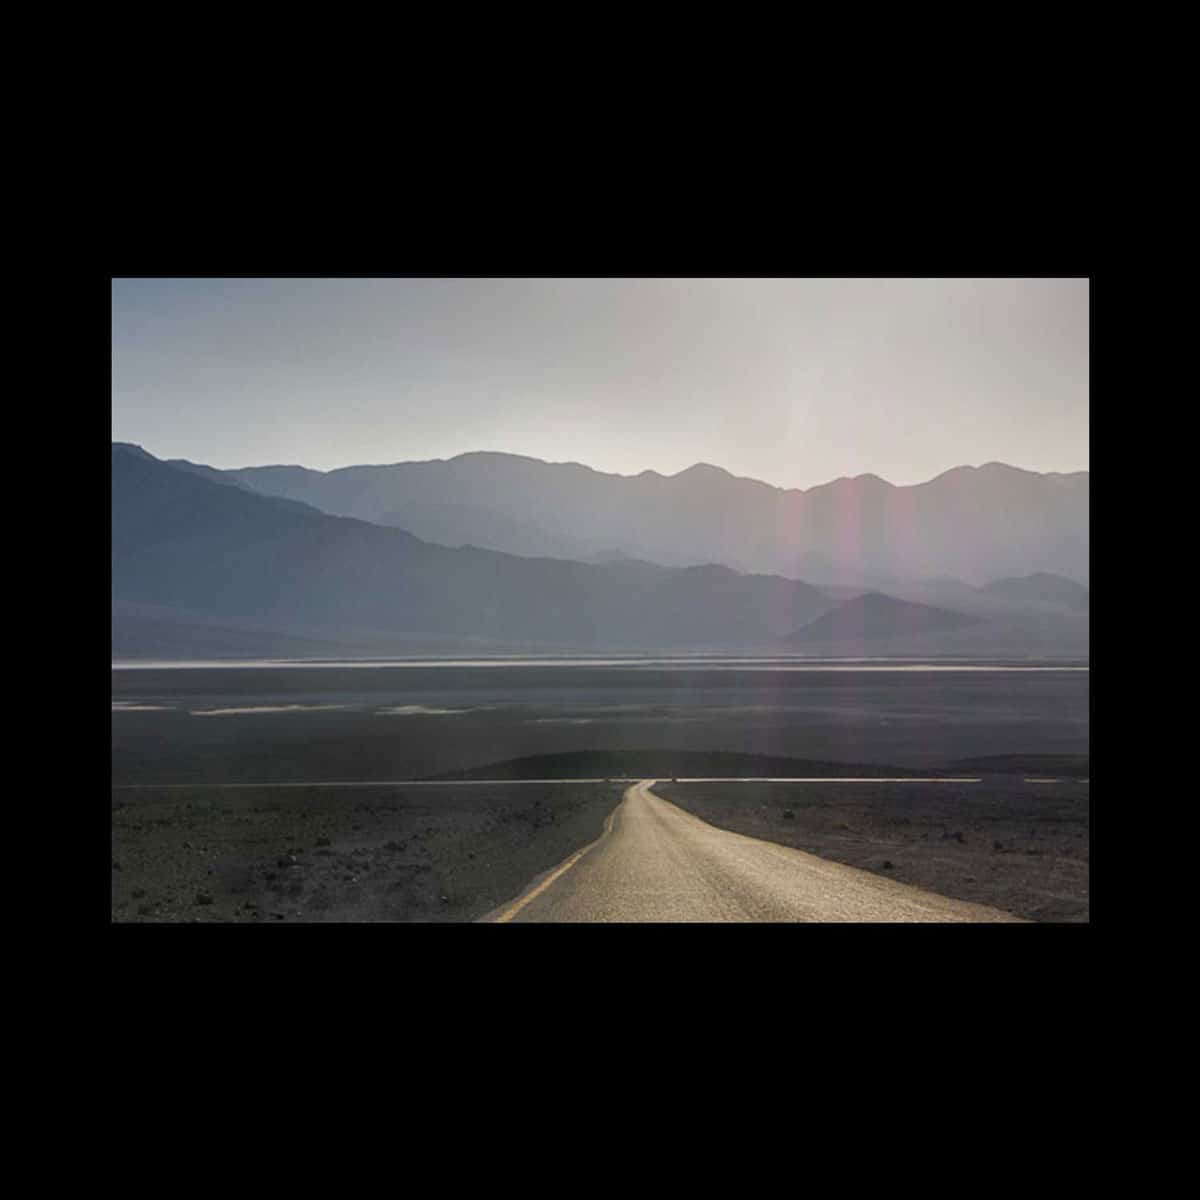 Maryse Magnin, Death Valley, 2017